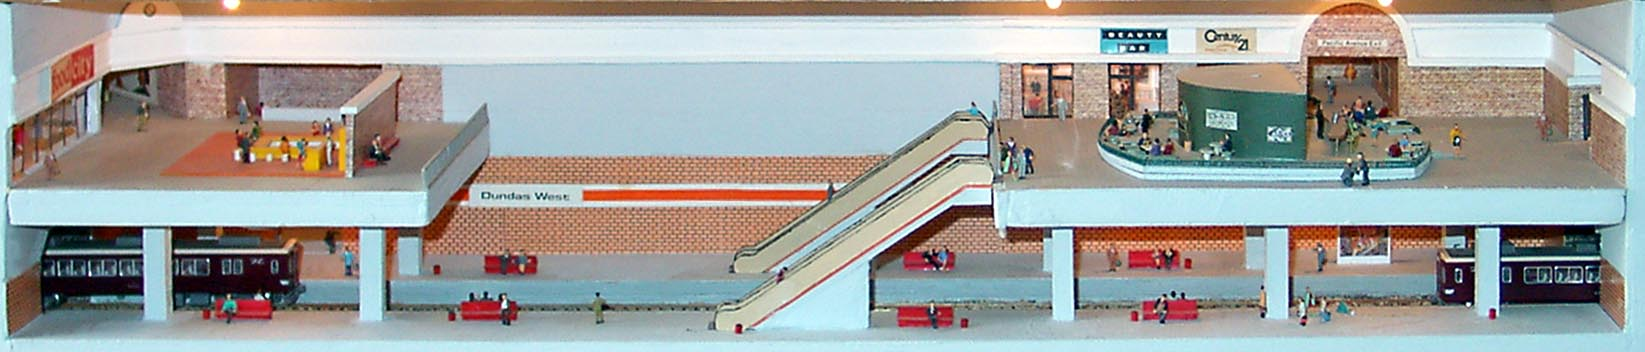 model of a subway station by Branden Gates Studios